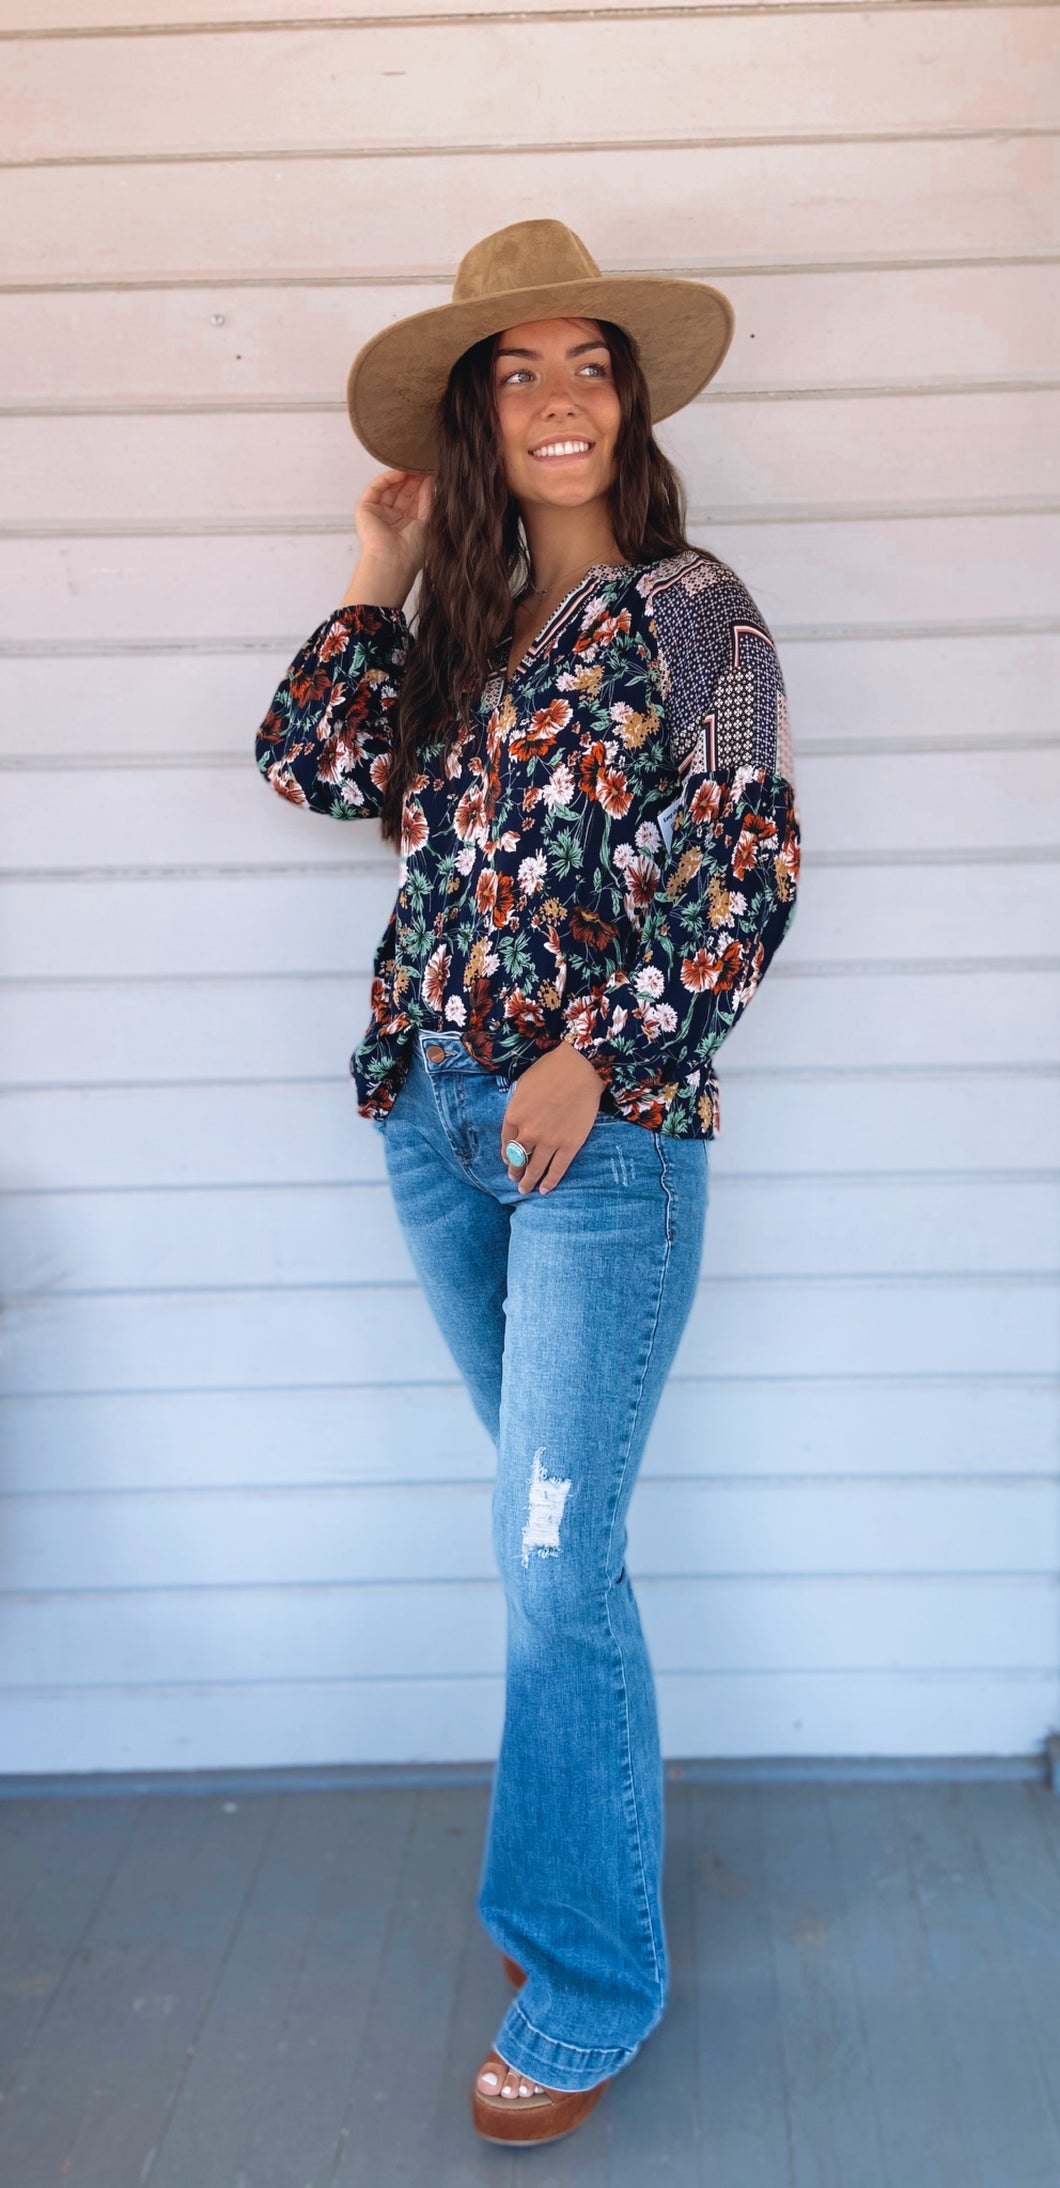 Oh hey there floral Navy long sleeve blouse